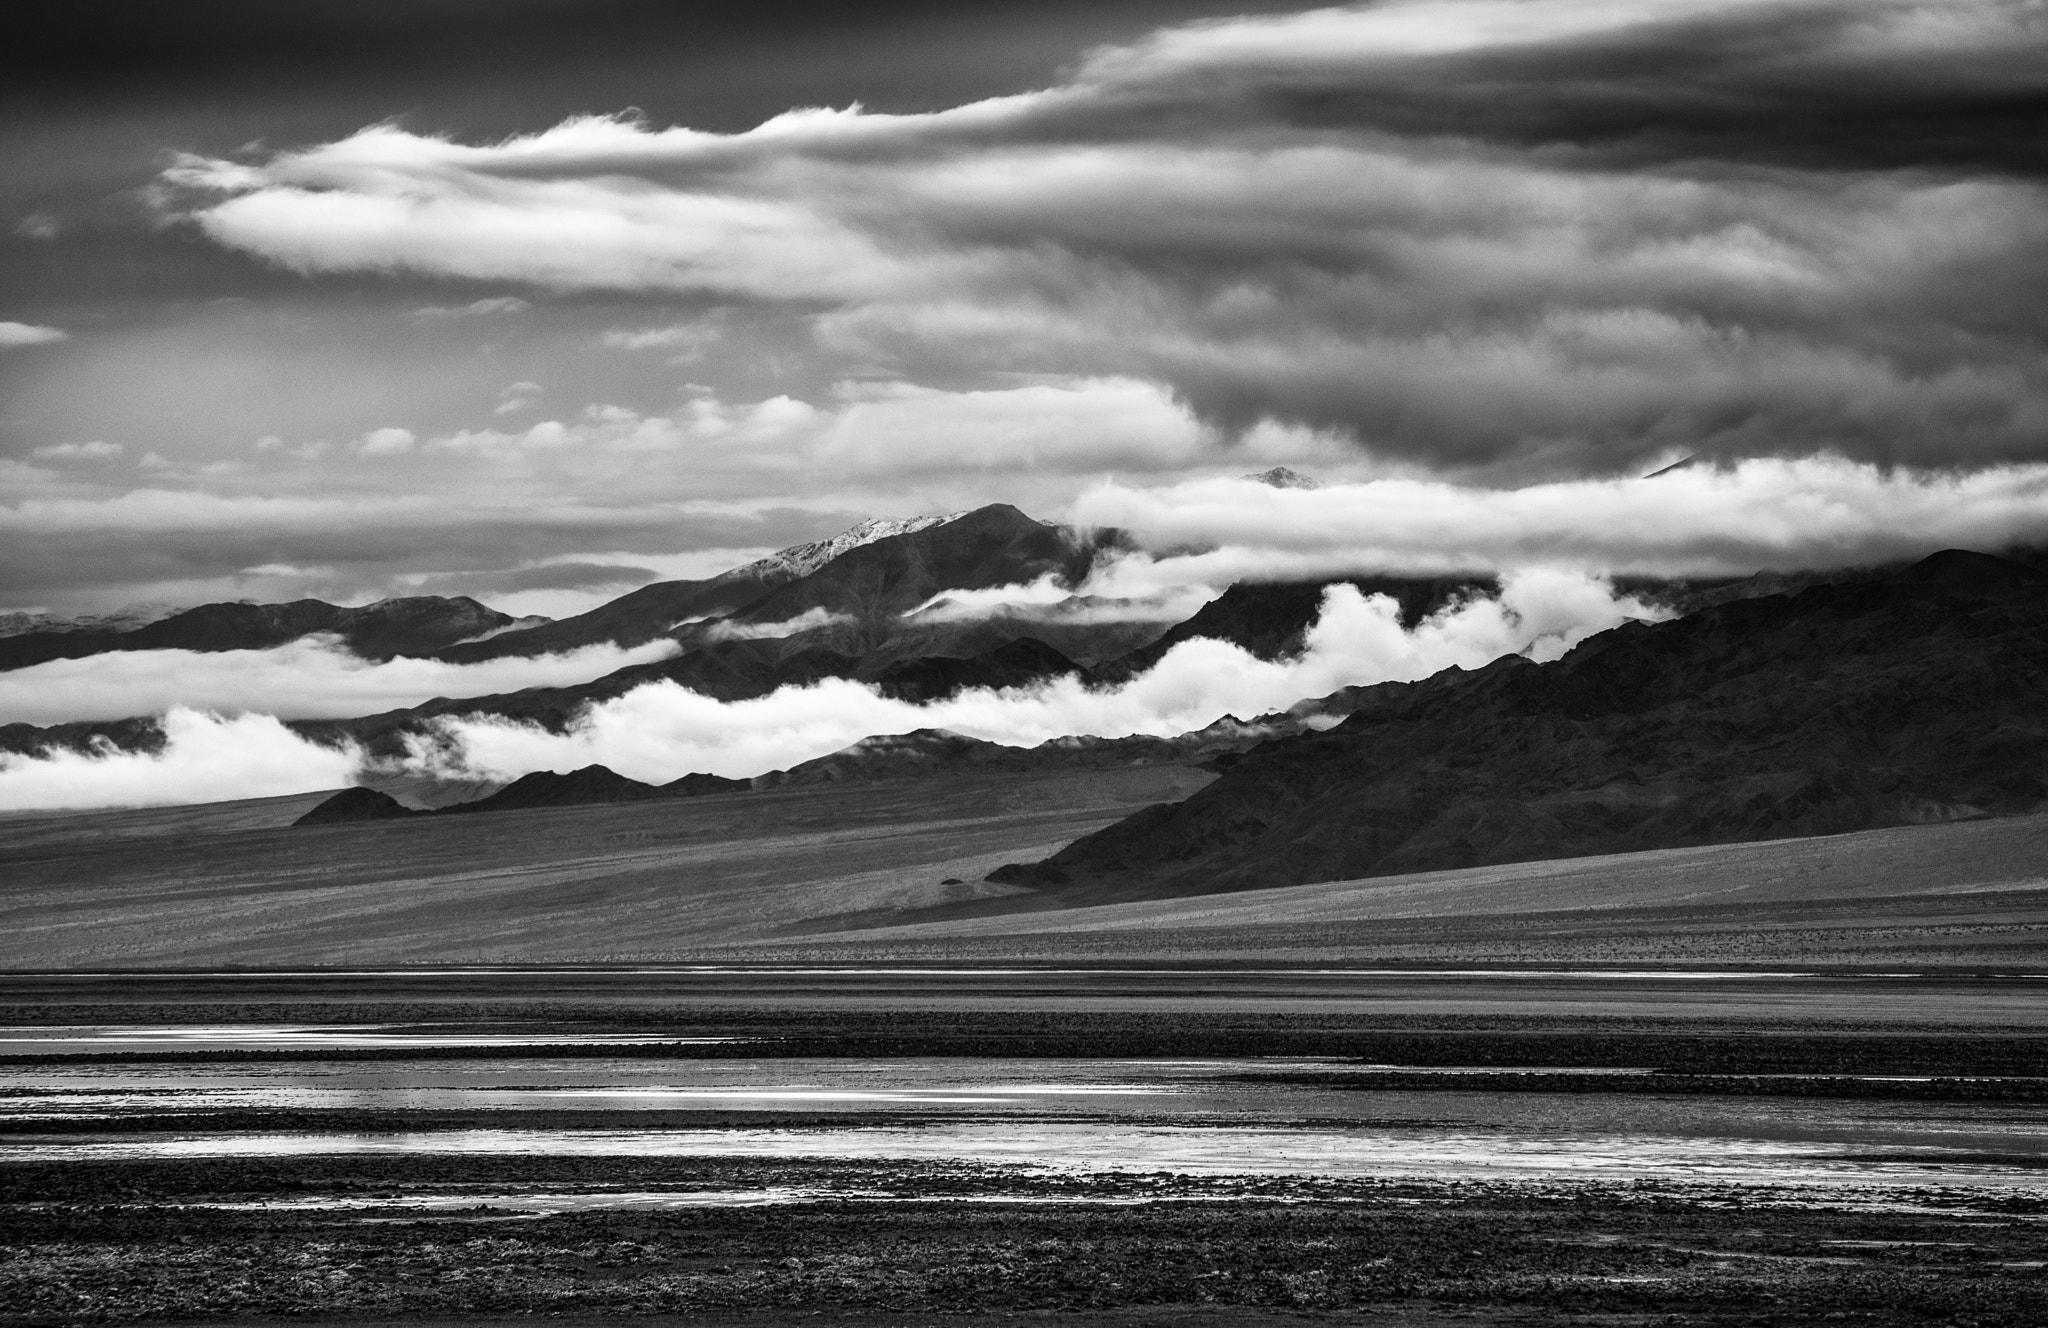 Photograph Death Valley by Keith Skelton on 500px